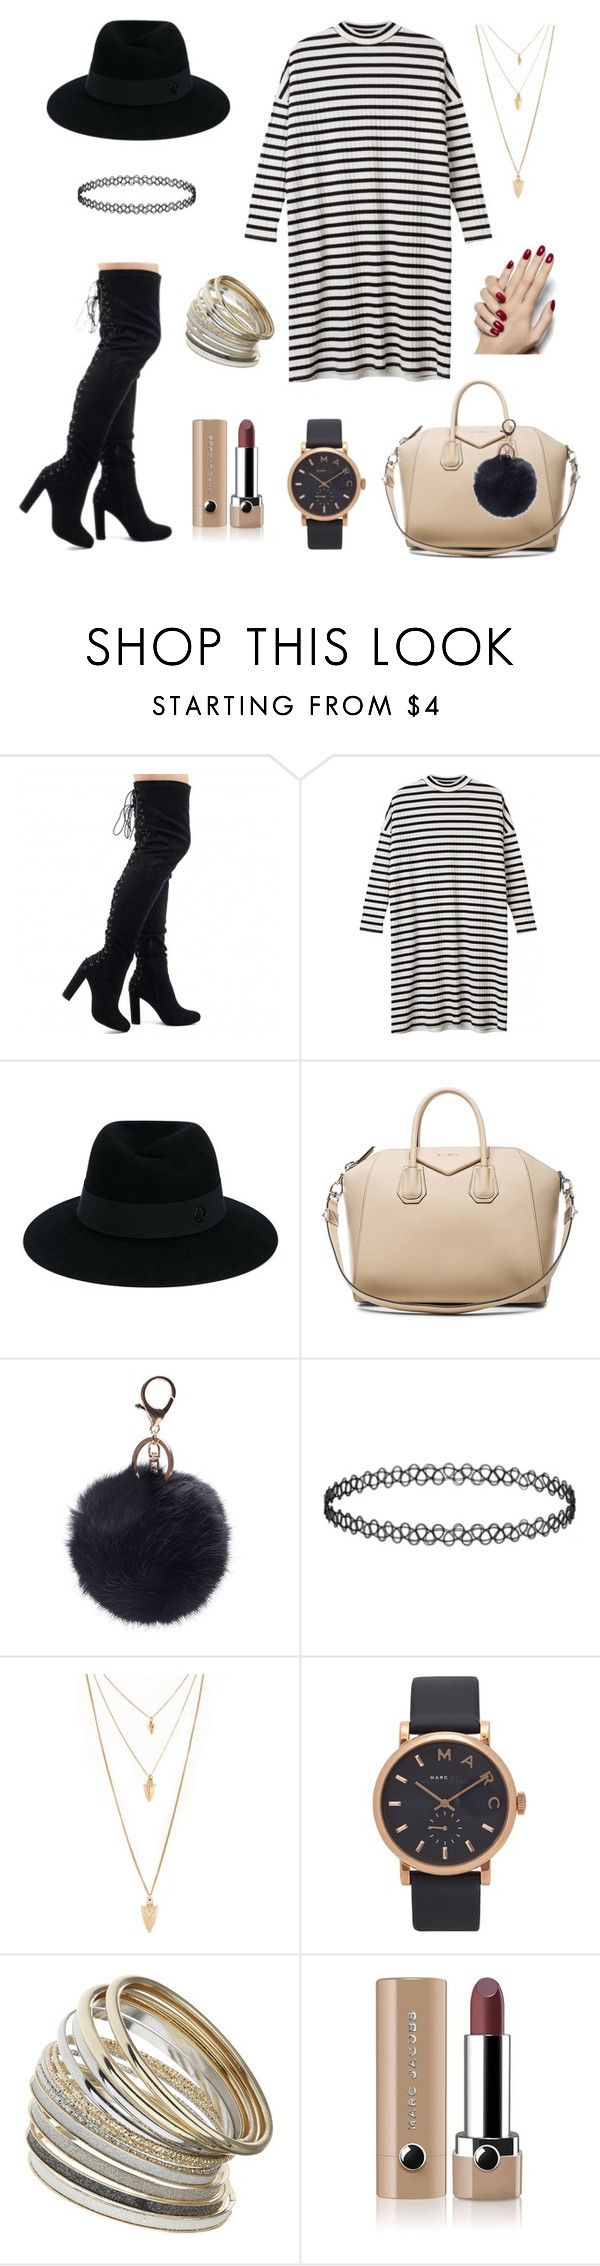 """Cashual yet classy look. Fur pom available on styleloft.dk"" by shop-styleloft on Polyvore featuring Monki, Maison Michel, Givenchy, Forever 21, Marc by Marc Jacobs, Miss Selfridge and Marc Jacobs"